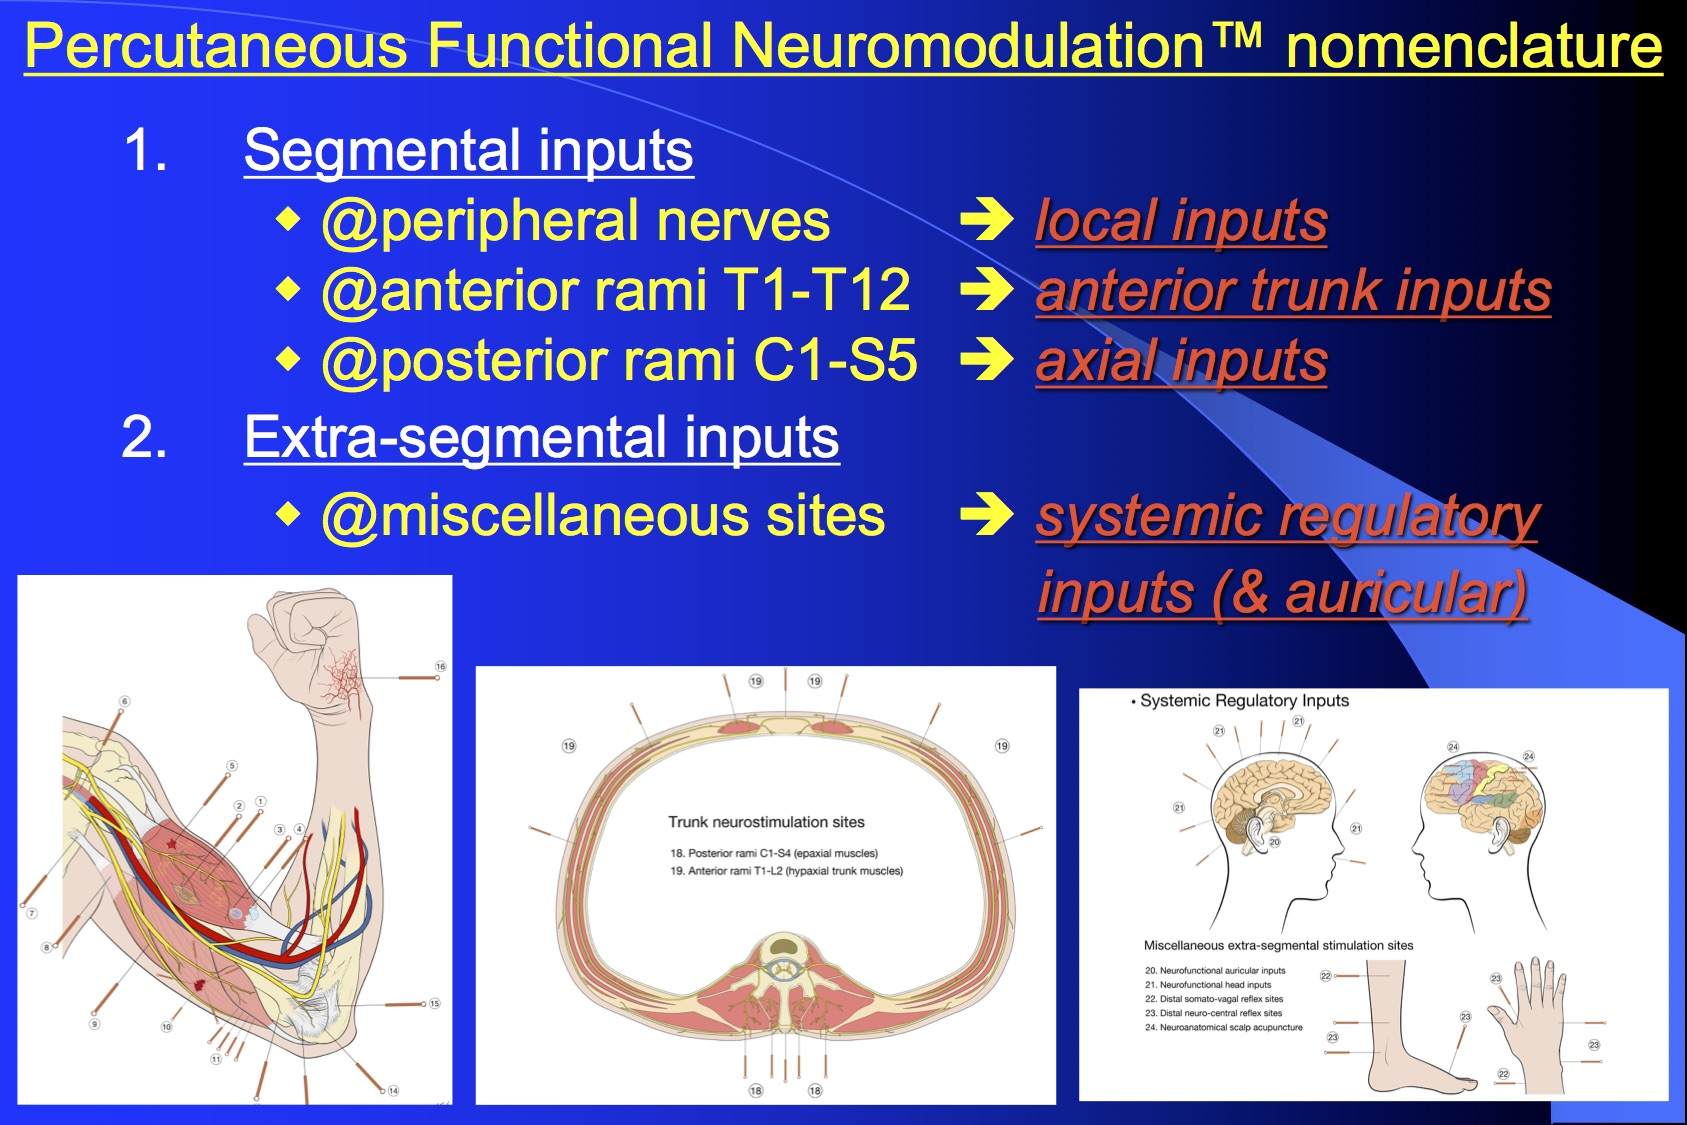 Percutaneous Functional Neuromodulation™ Nomenclature